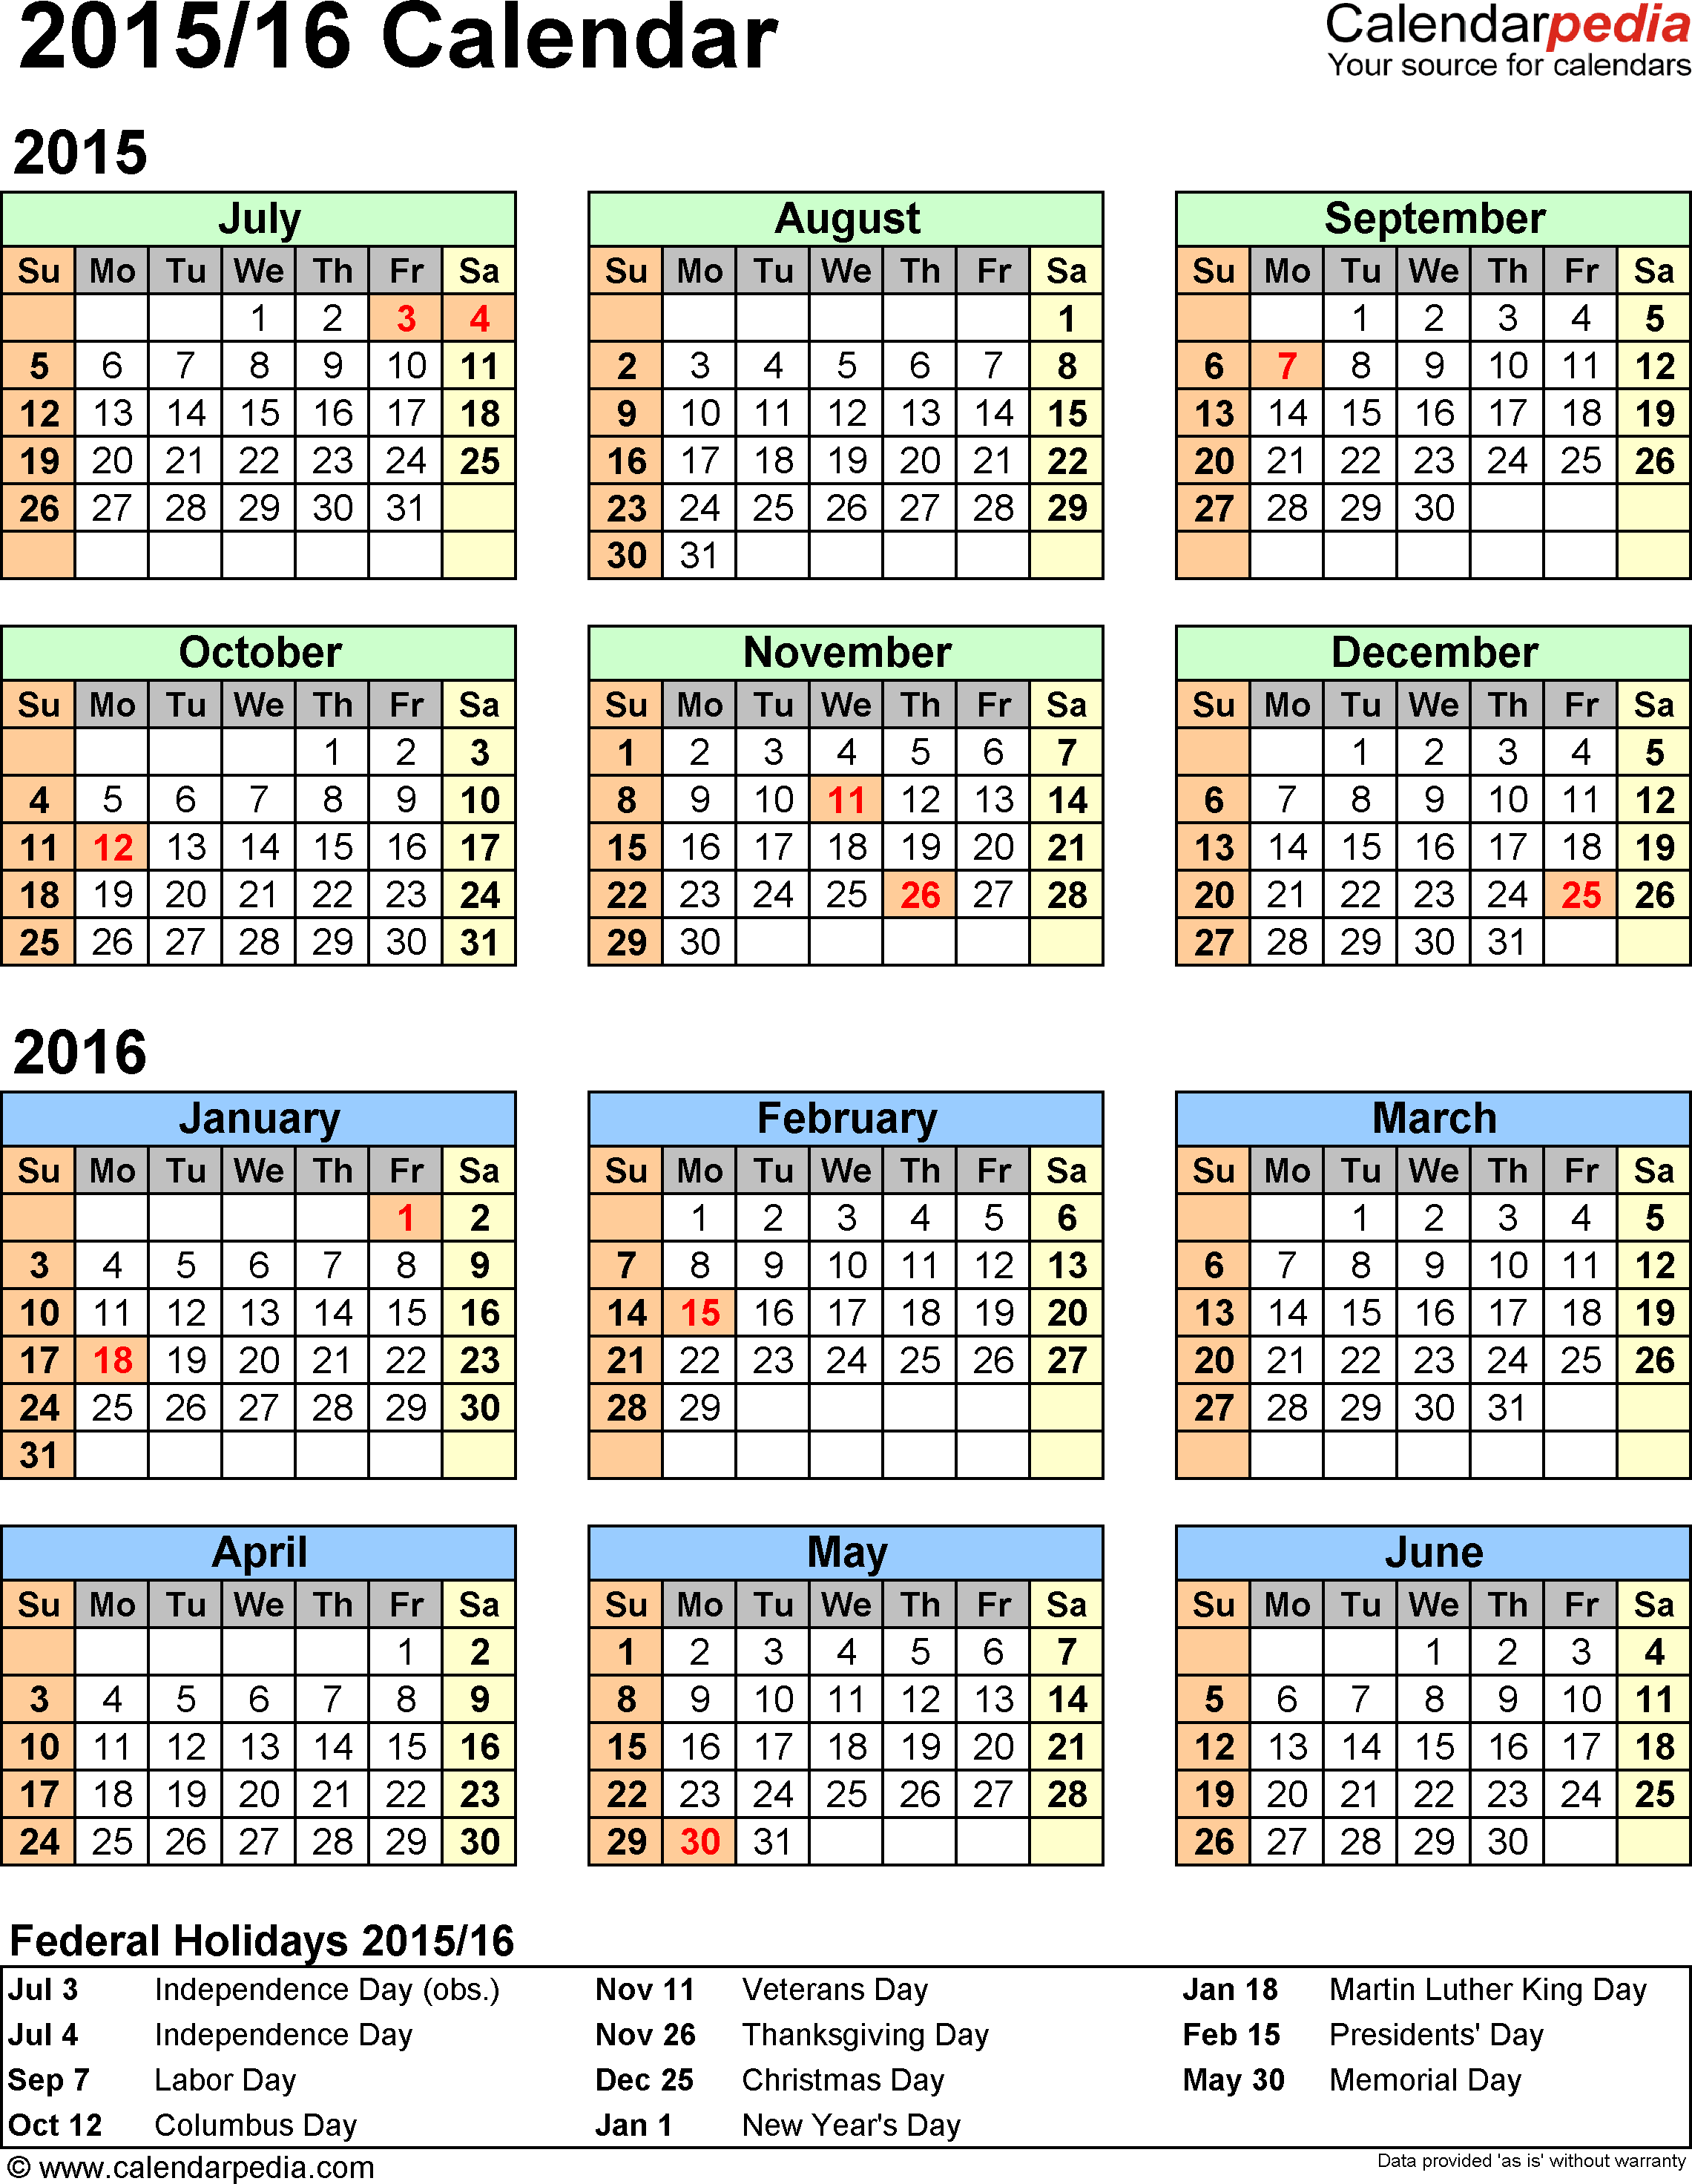 Template 2: PDF template for split year calendar 2015/16 (portrait orientation, 1 page)